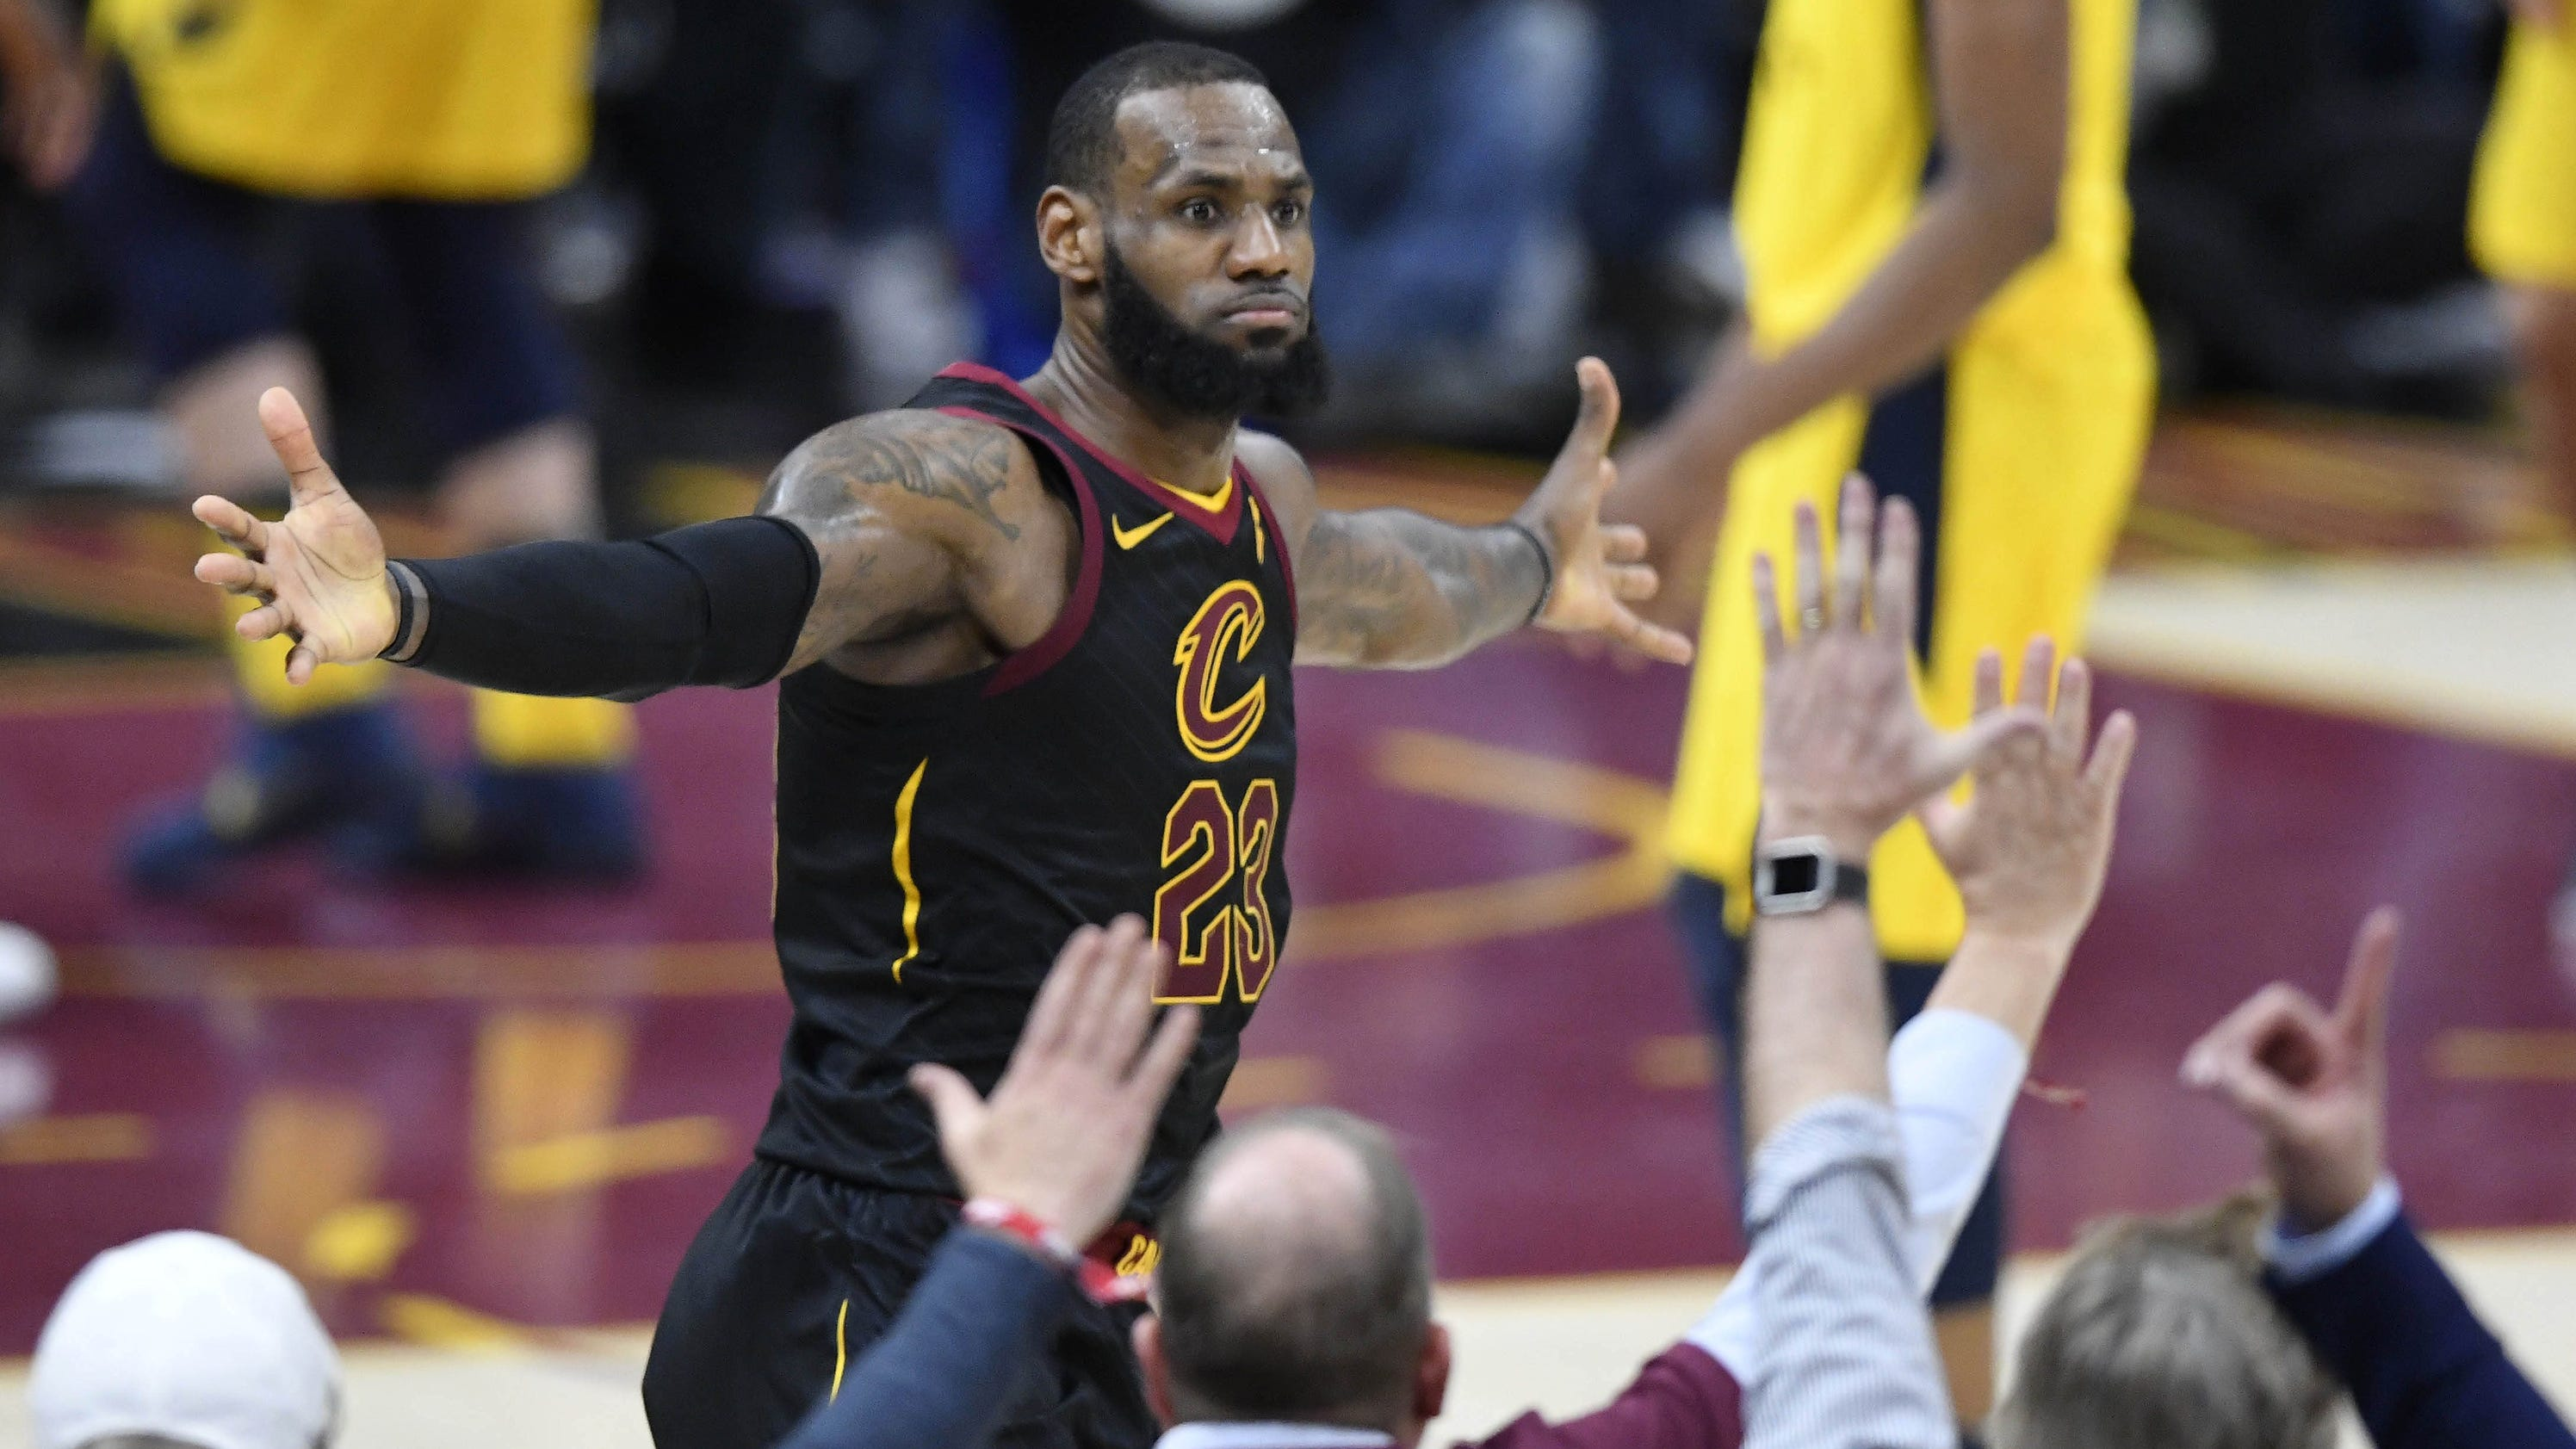 cleveland fans going nuts lebron